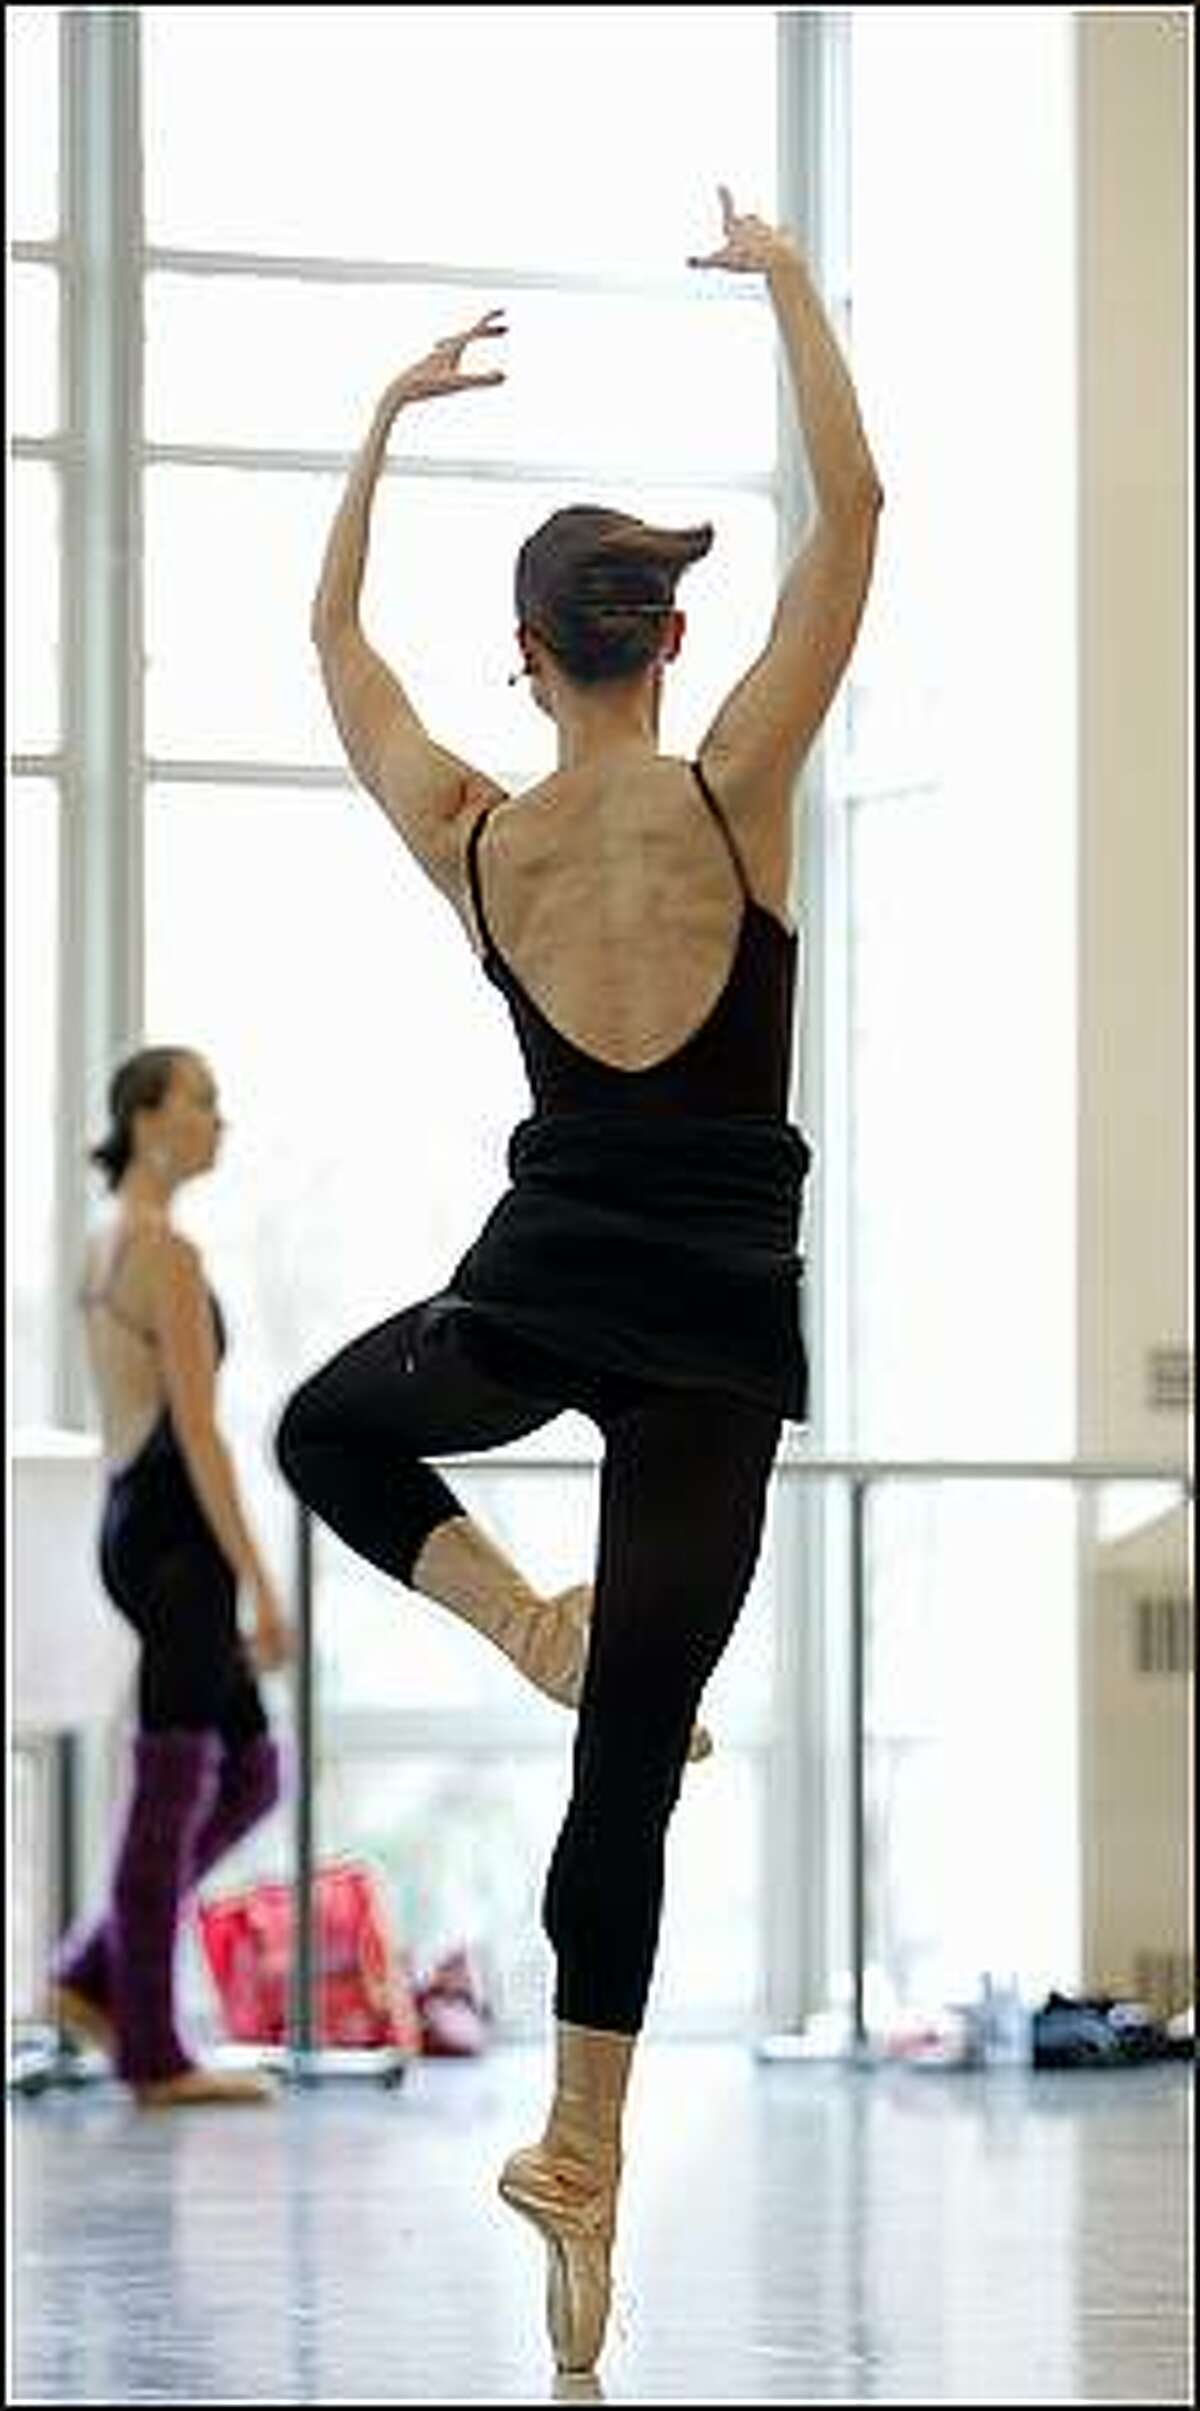 Louise Nadeau, a principal with the Pacific Northwest Ballet, participates in class with the rest of the company at the Phelps Center in Seattle Tuesday, Jan. 13, 2009.